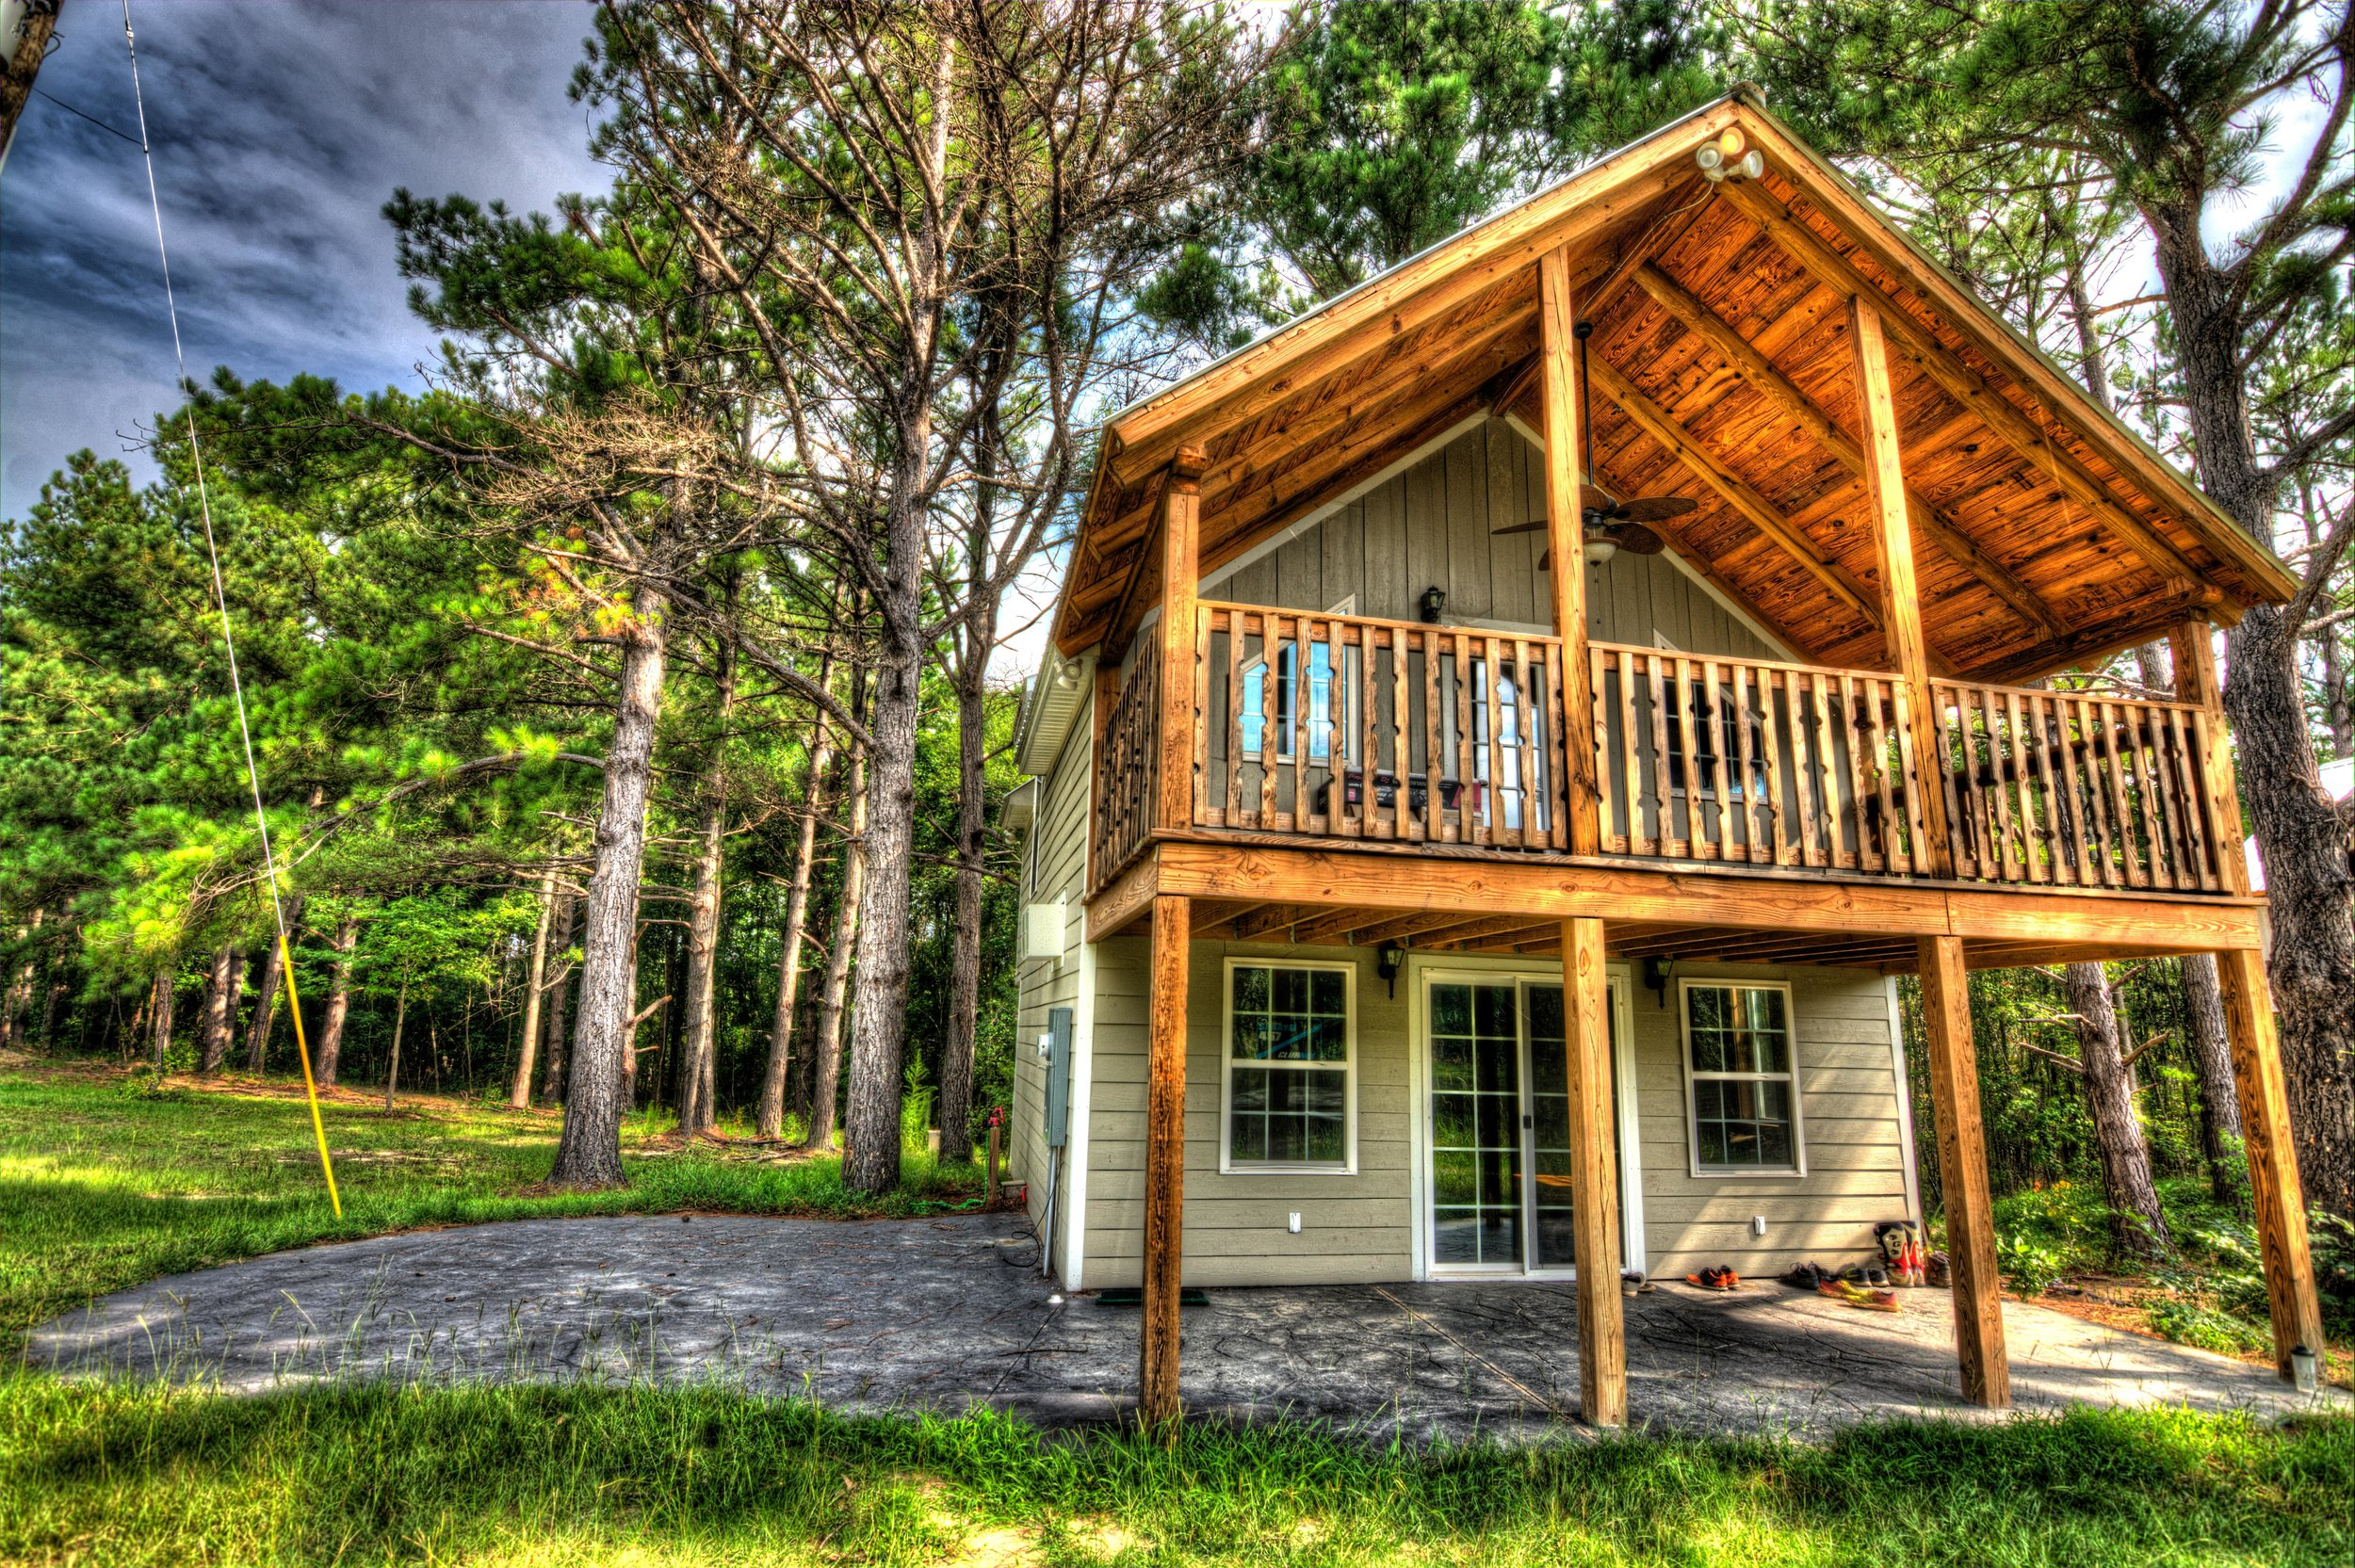 - $650 additionalDeluxe cabins-2 bedrooms, kitchen, bath, living, decks, patio, laundry.